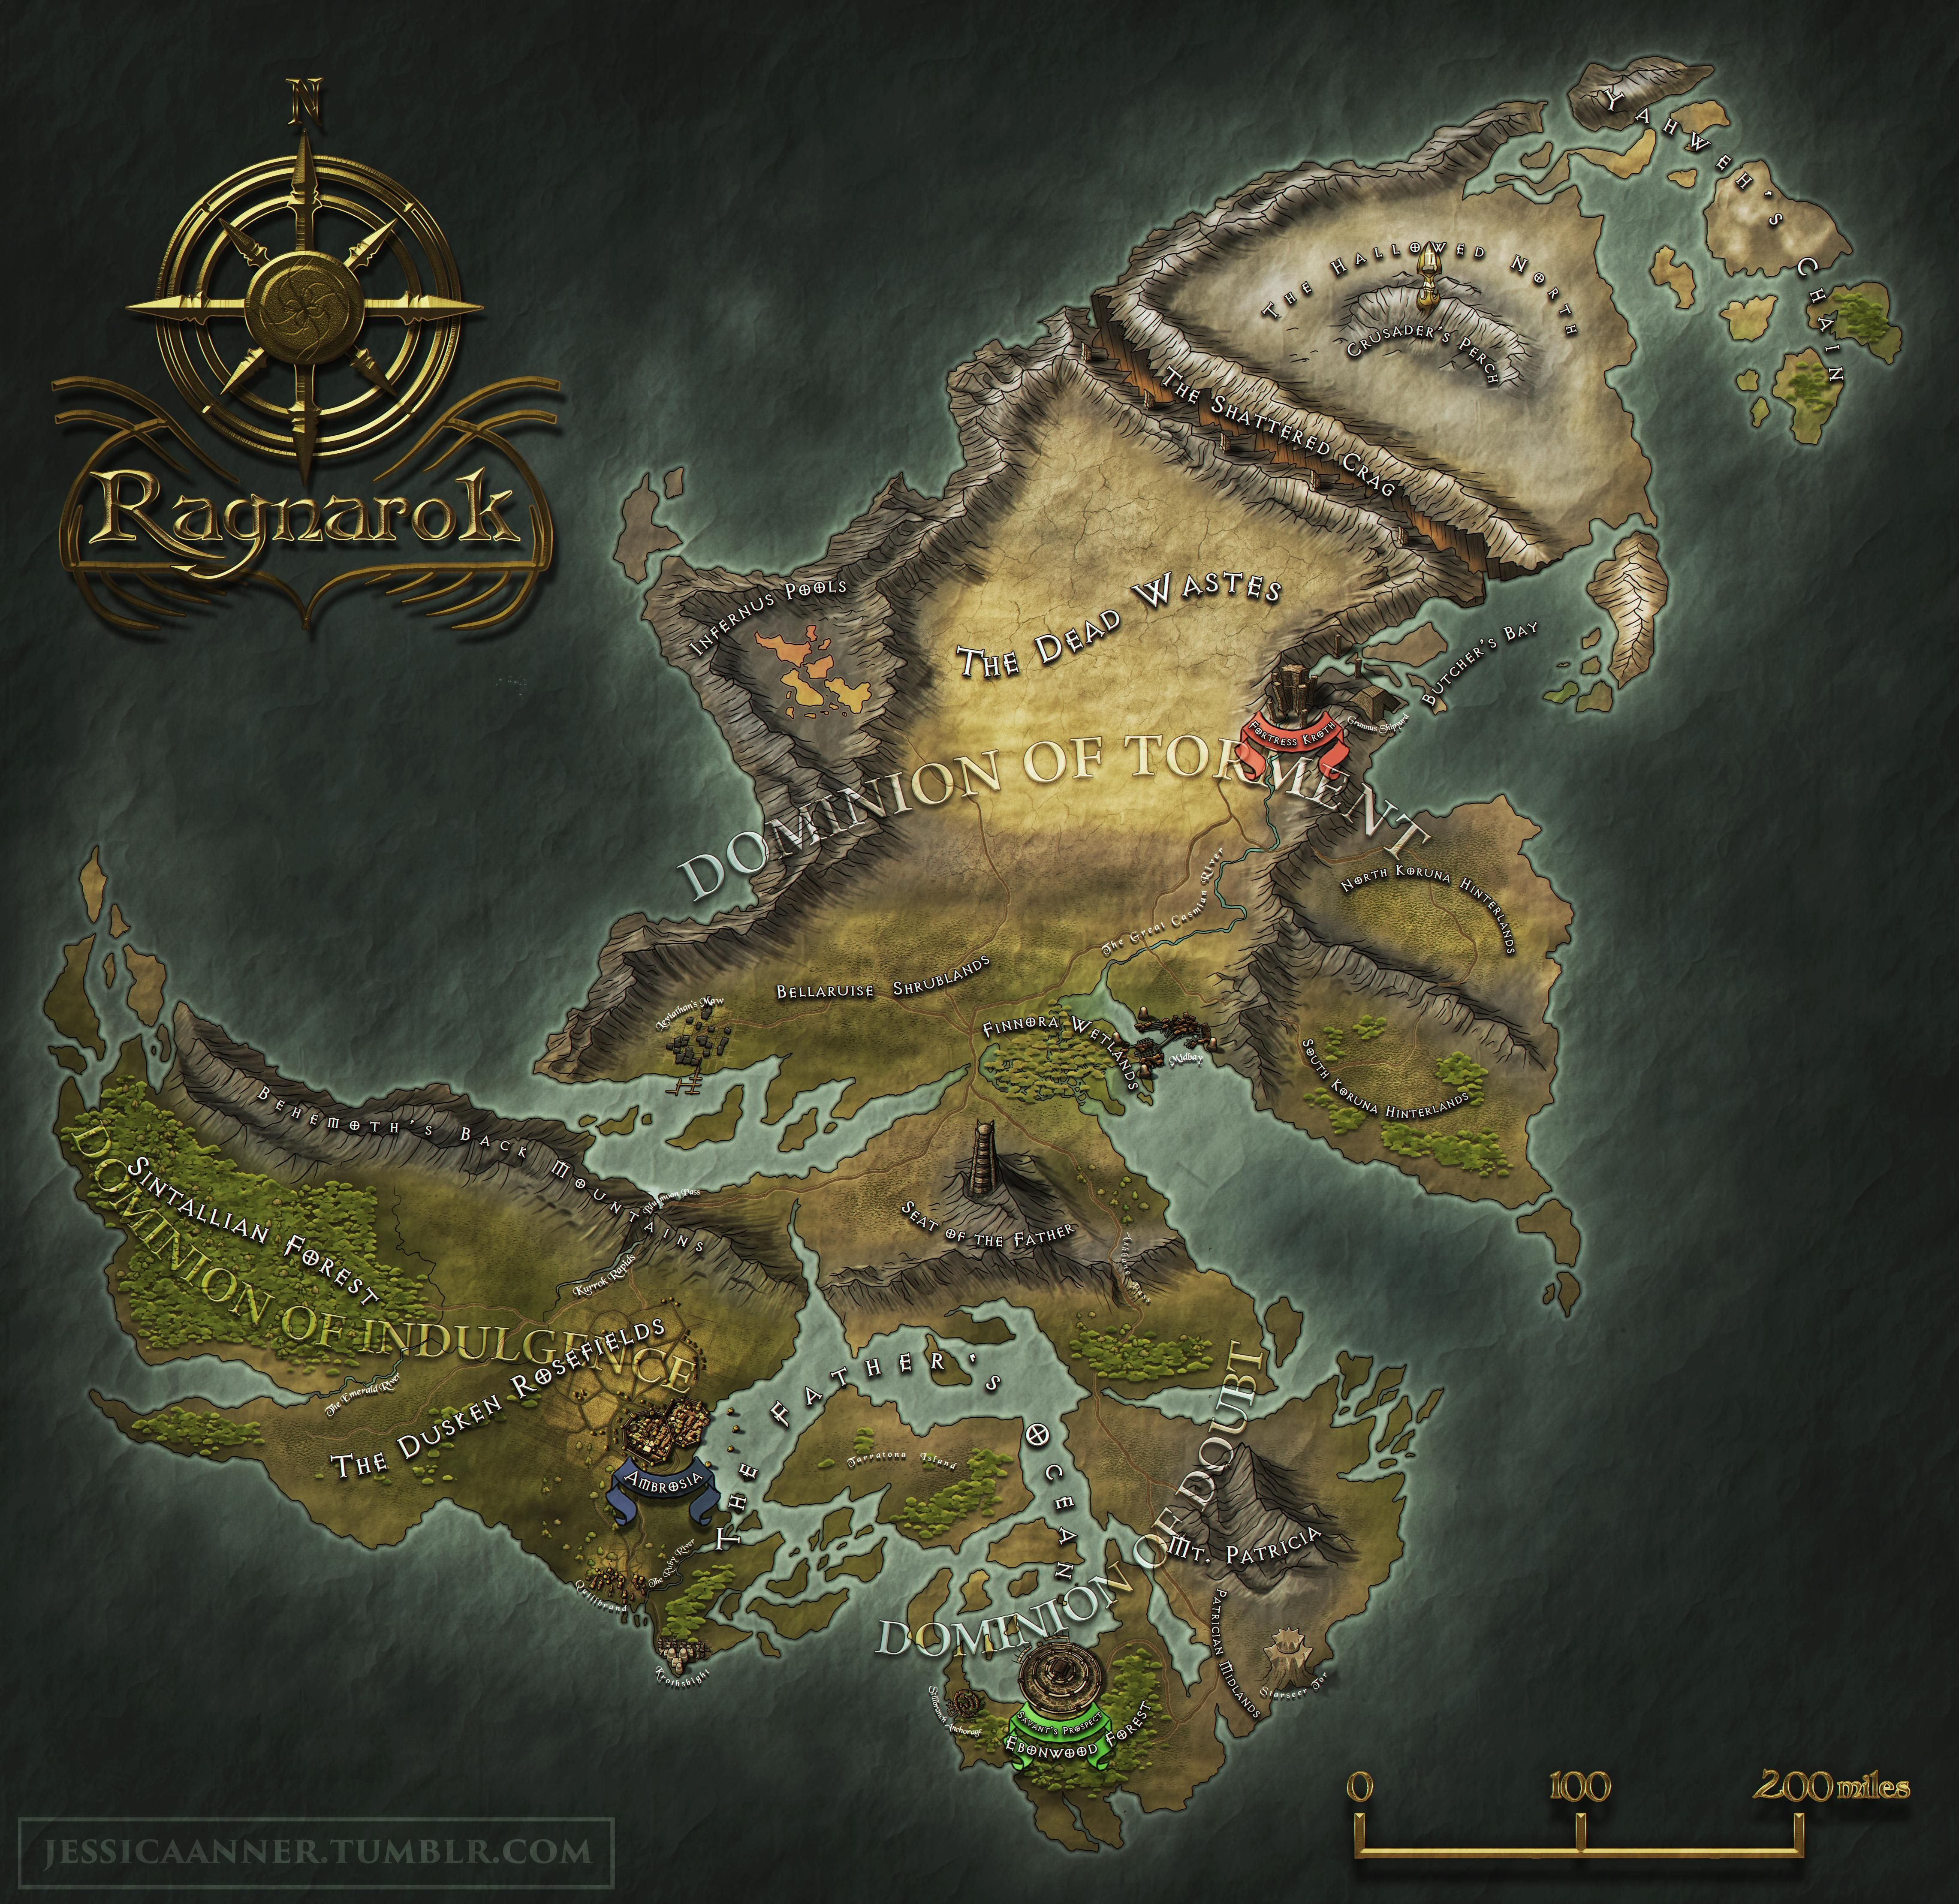 Pin by Blake Hoppes on Dungeon Master's Cave | Dungeon maps